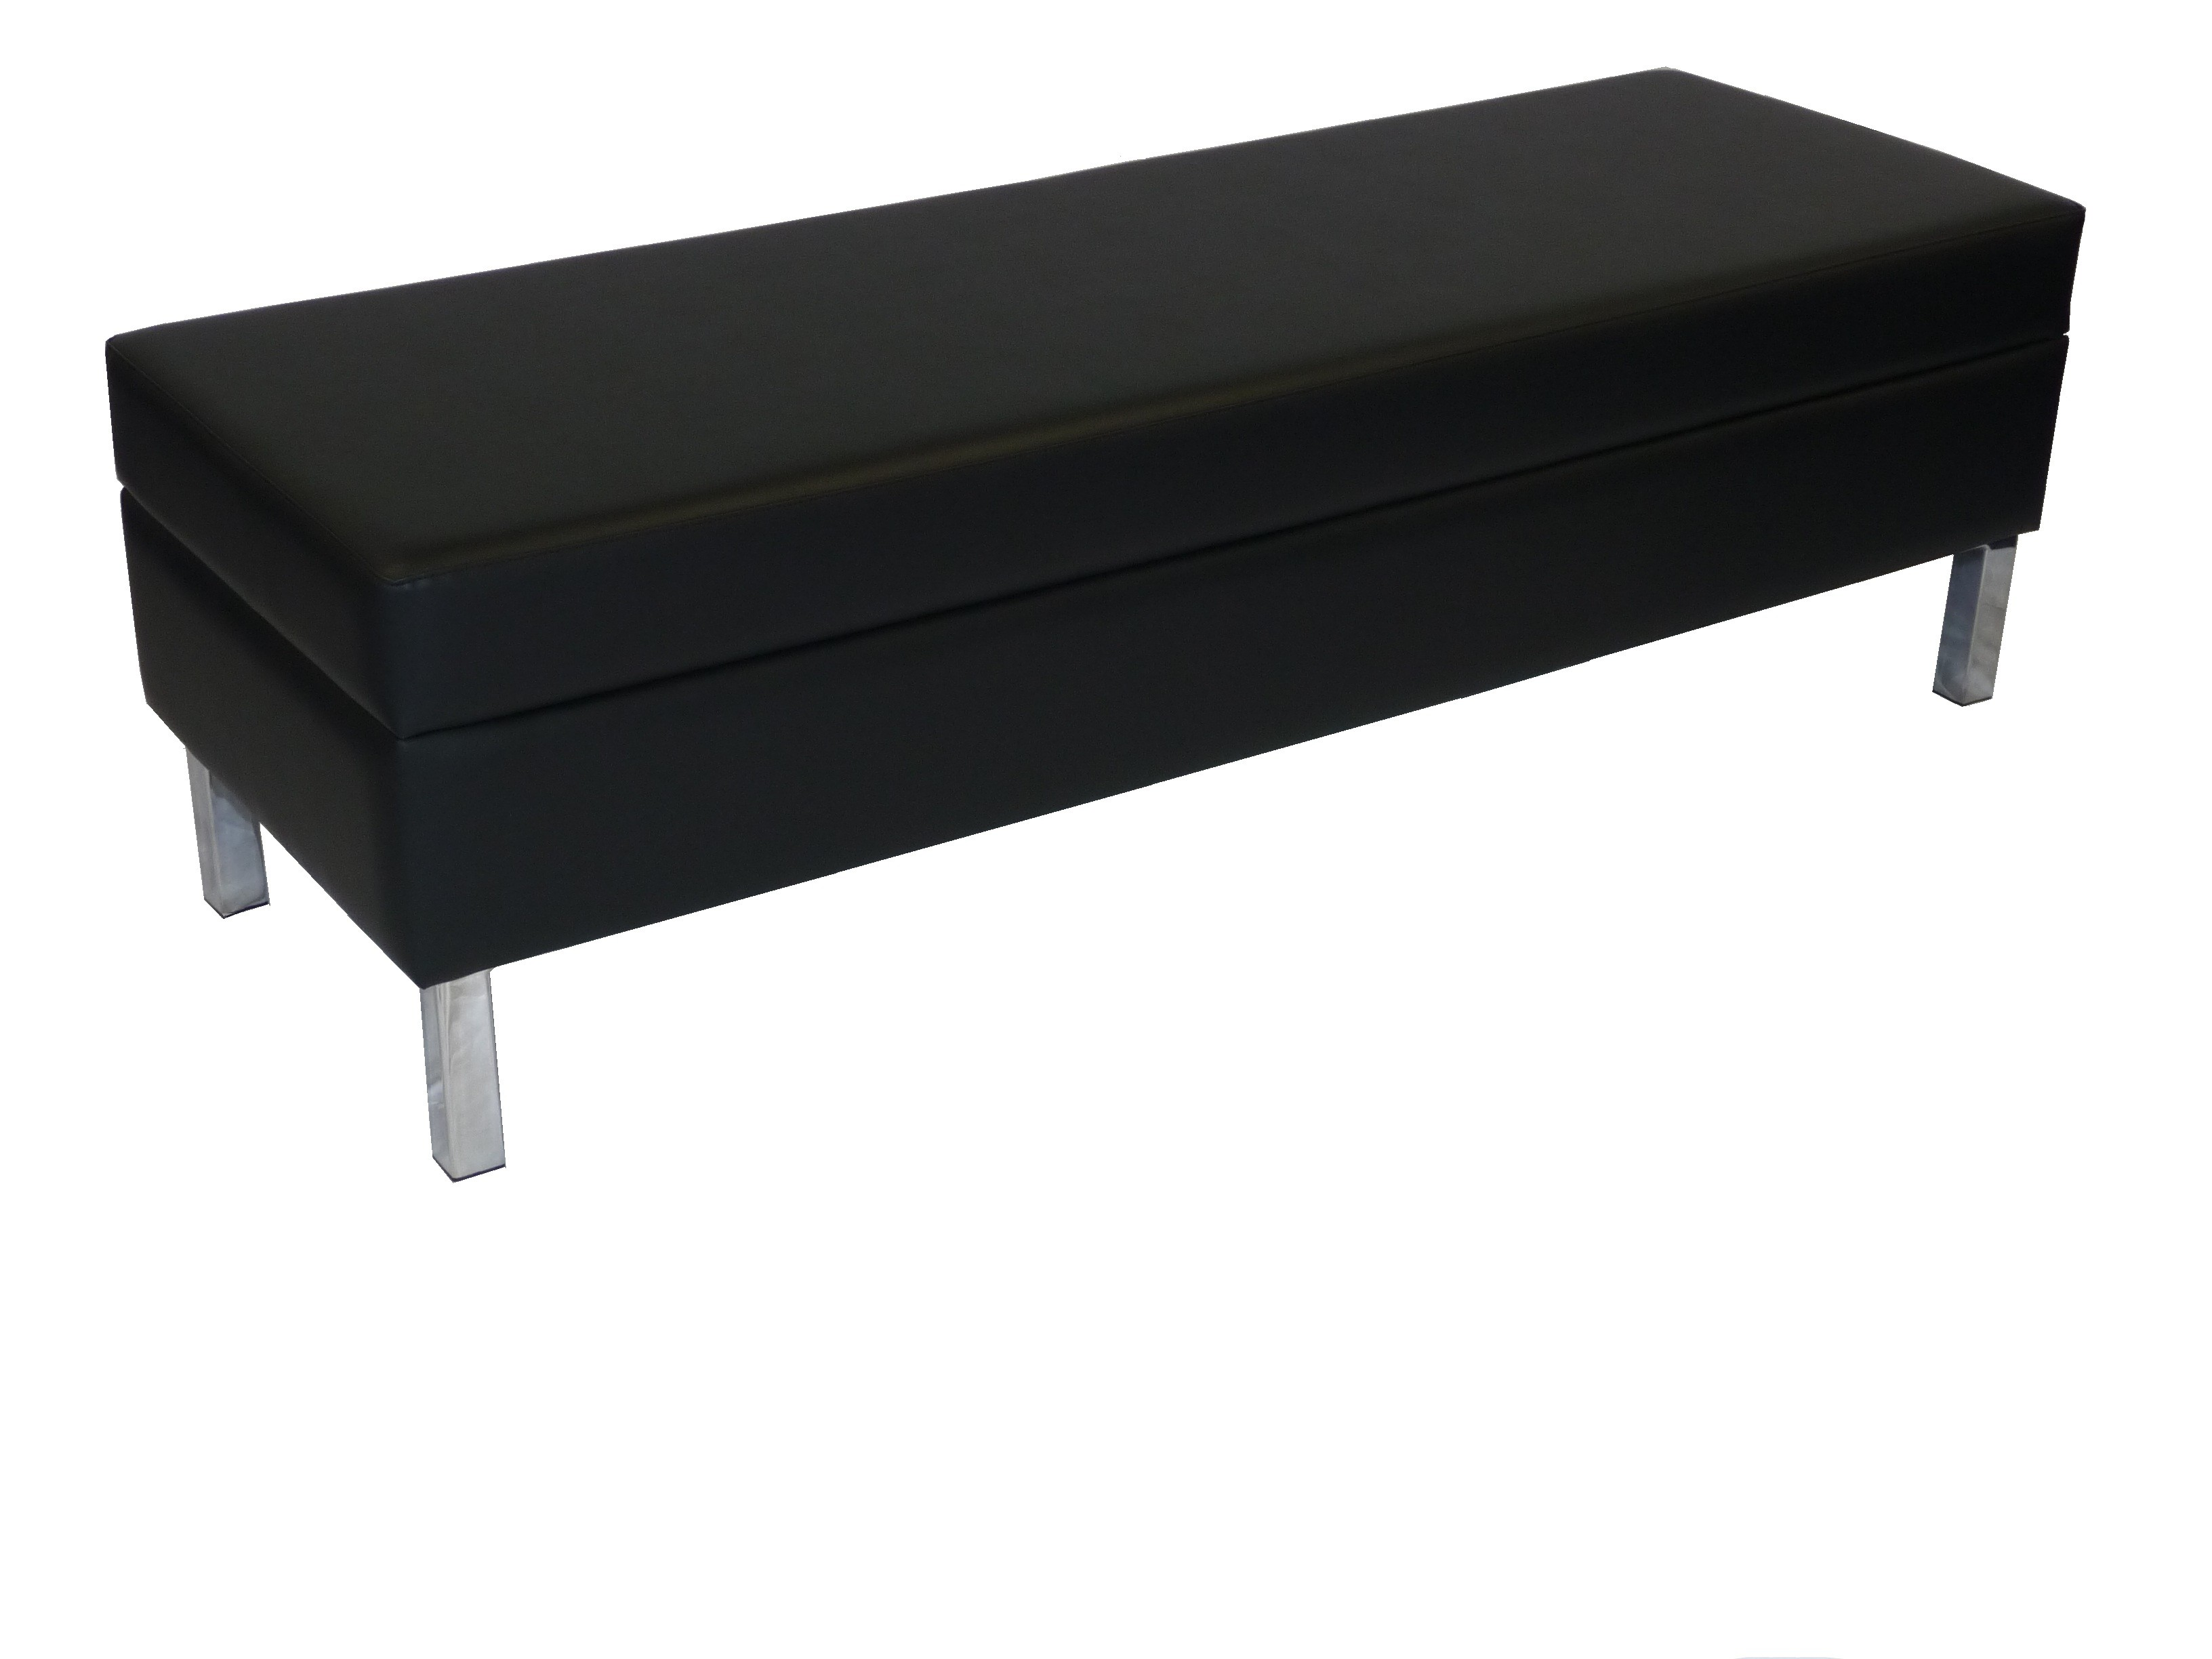 Office Furniture Hire Elite Bench Ottoman Black Office Furniture Hire